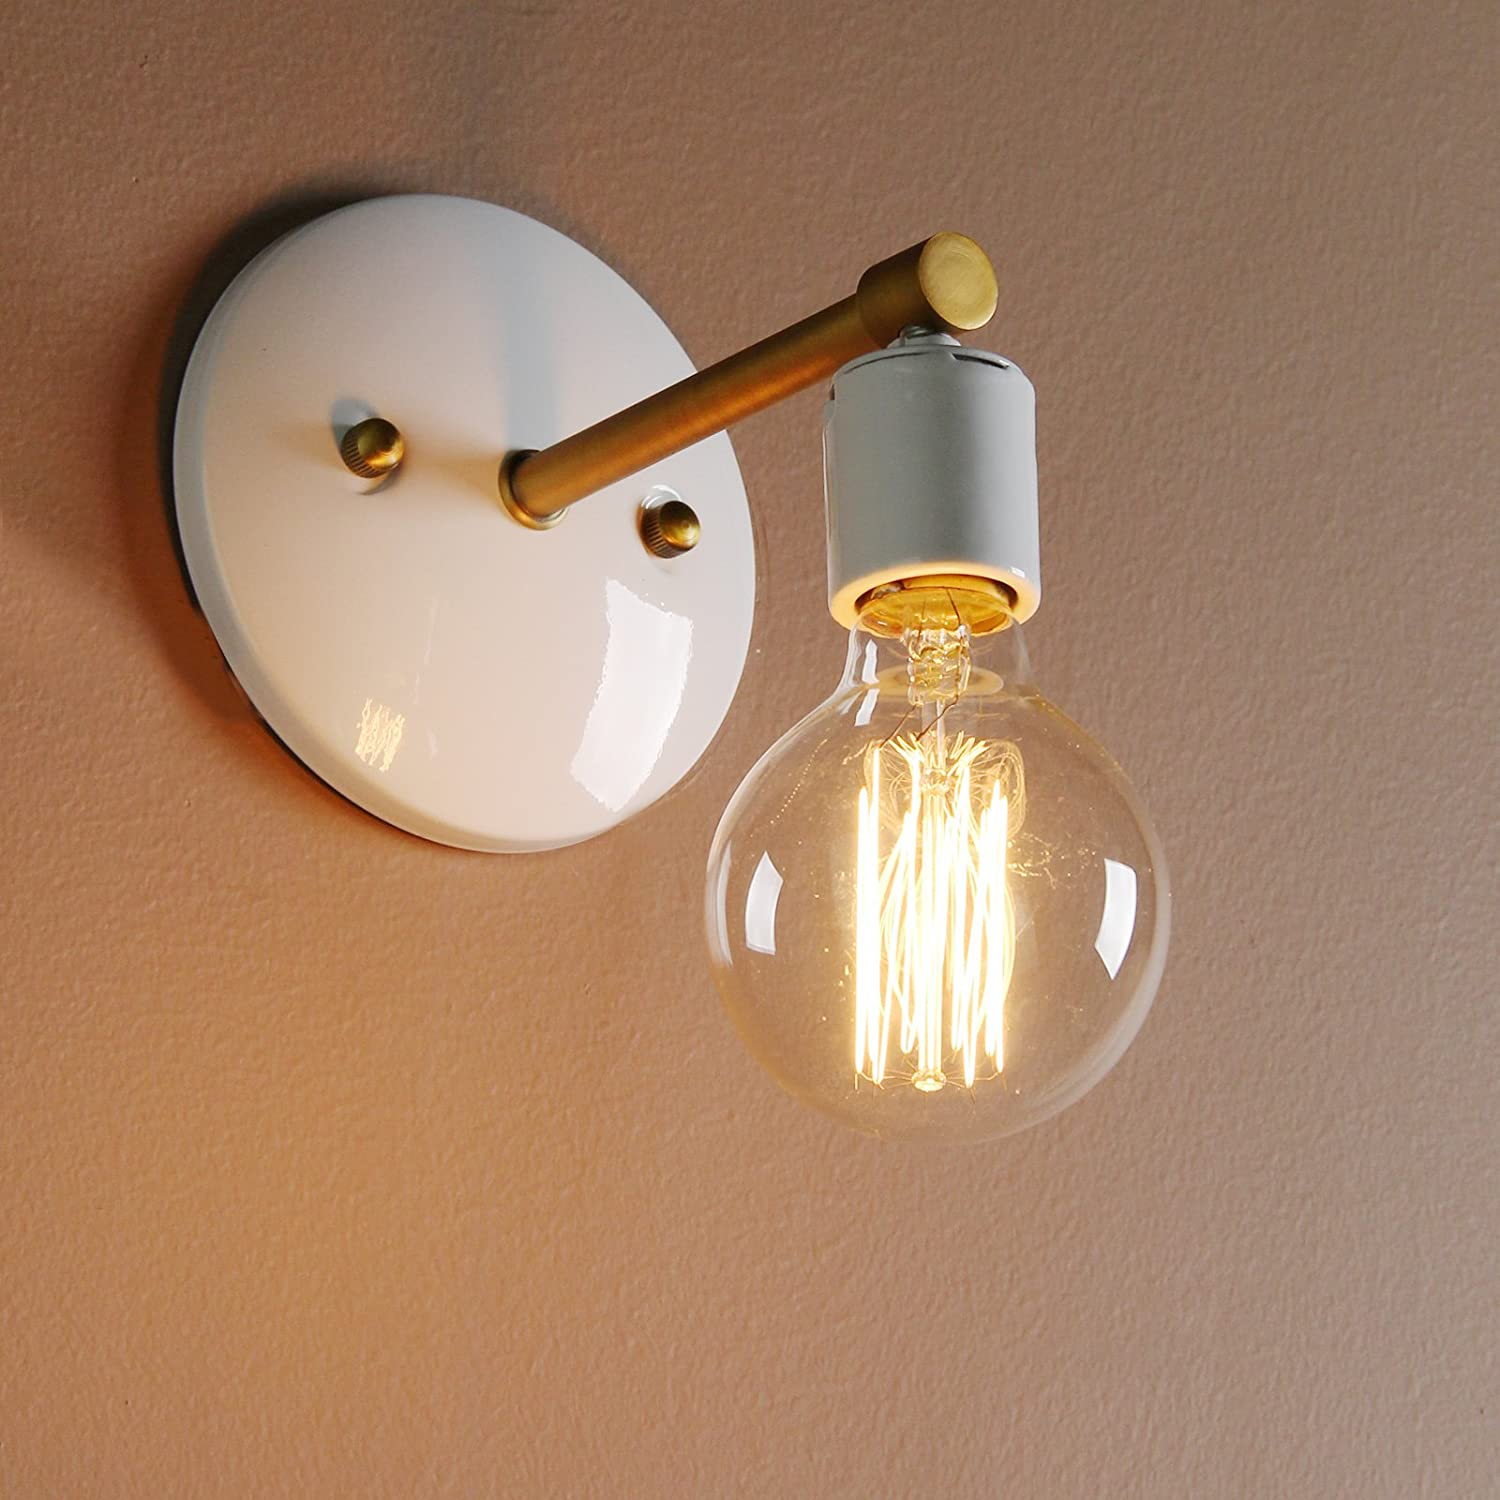 style industrial vintage moreview lighting light wall sconce lightbox clear glass edison main